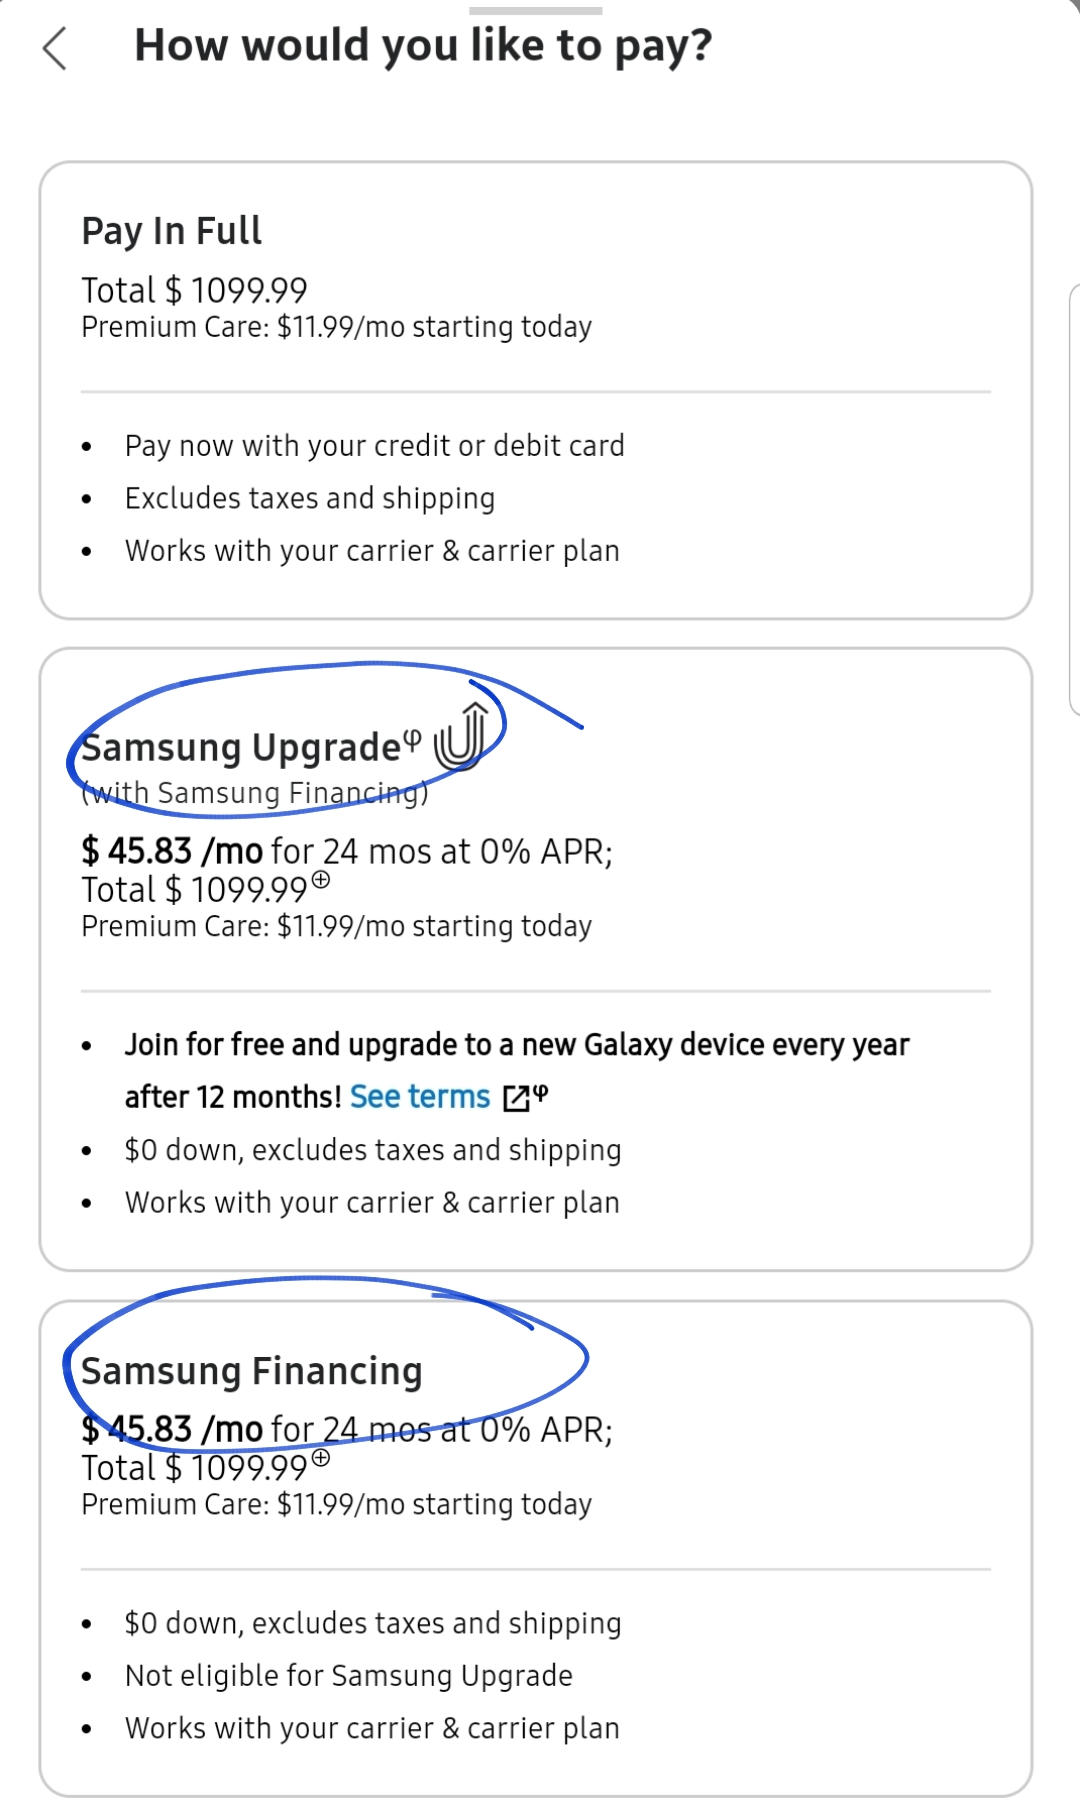 Pay Samsung Financing : samsung, financing, Anyone, Difference, Between, Upgrade, Financing, Options?, Offer, Terms, Except, Samsung